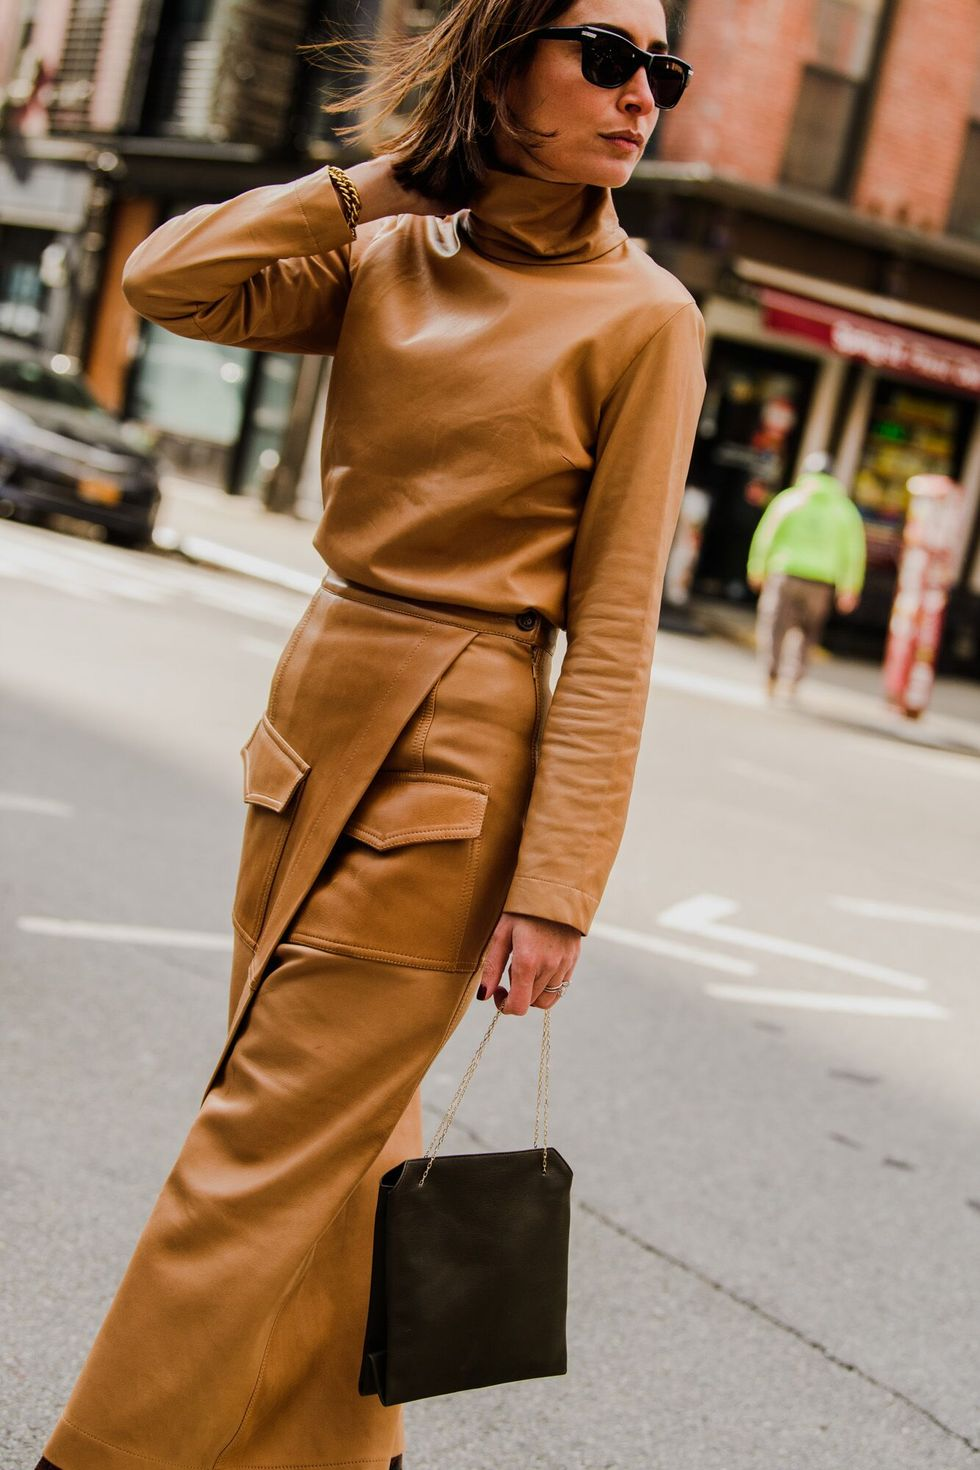 Leather Outfit jadi Trend di New York Fashion Week 2020, Berani Coba?